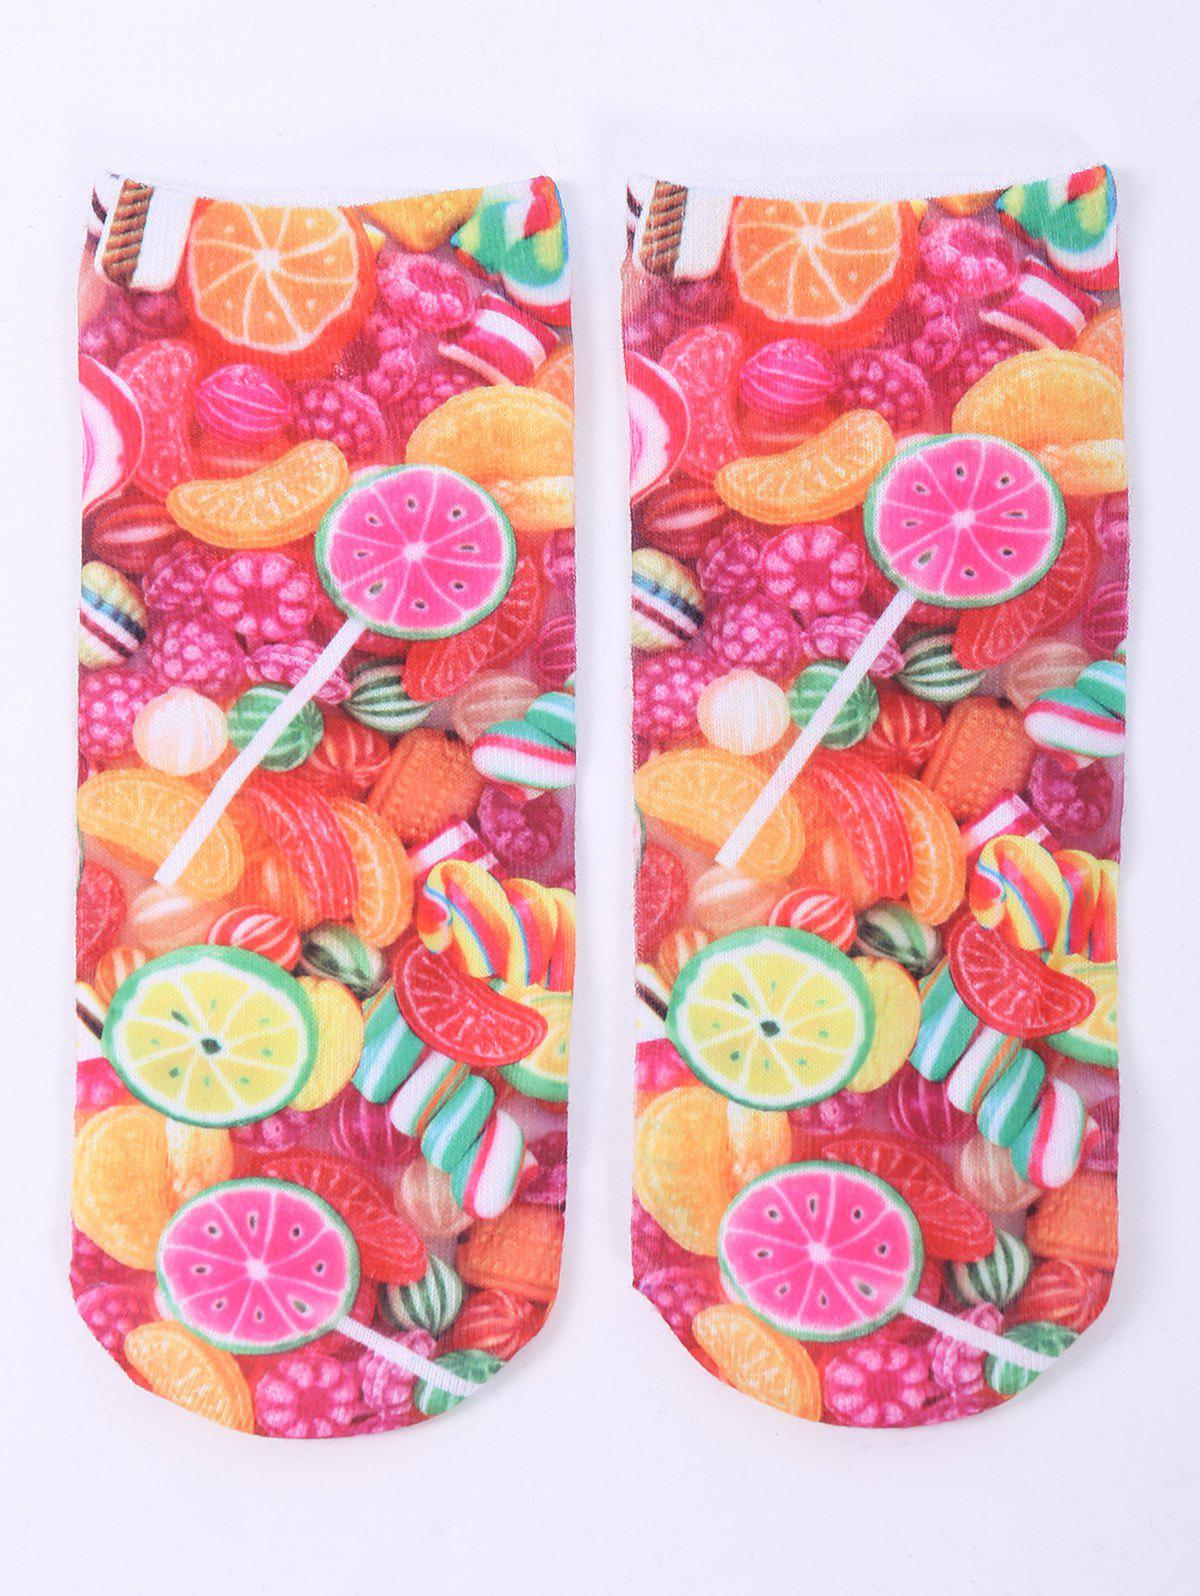 One Side 3D Fruit Candy Printed Crazy Ankle SocksACCESSORIES<br><br>Color: COLORFUL; Type: Socks; Group: Adult; Gender: For Women; Style: Fashion; Pattern Type: Others; Material: Spandex; Length(CM): 20CM; Width(CM): 8CM; Weight: 0.100kg; Package Contents: 1 x Socks(Pair);